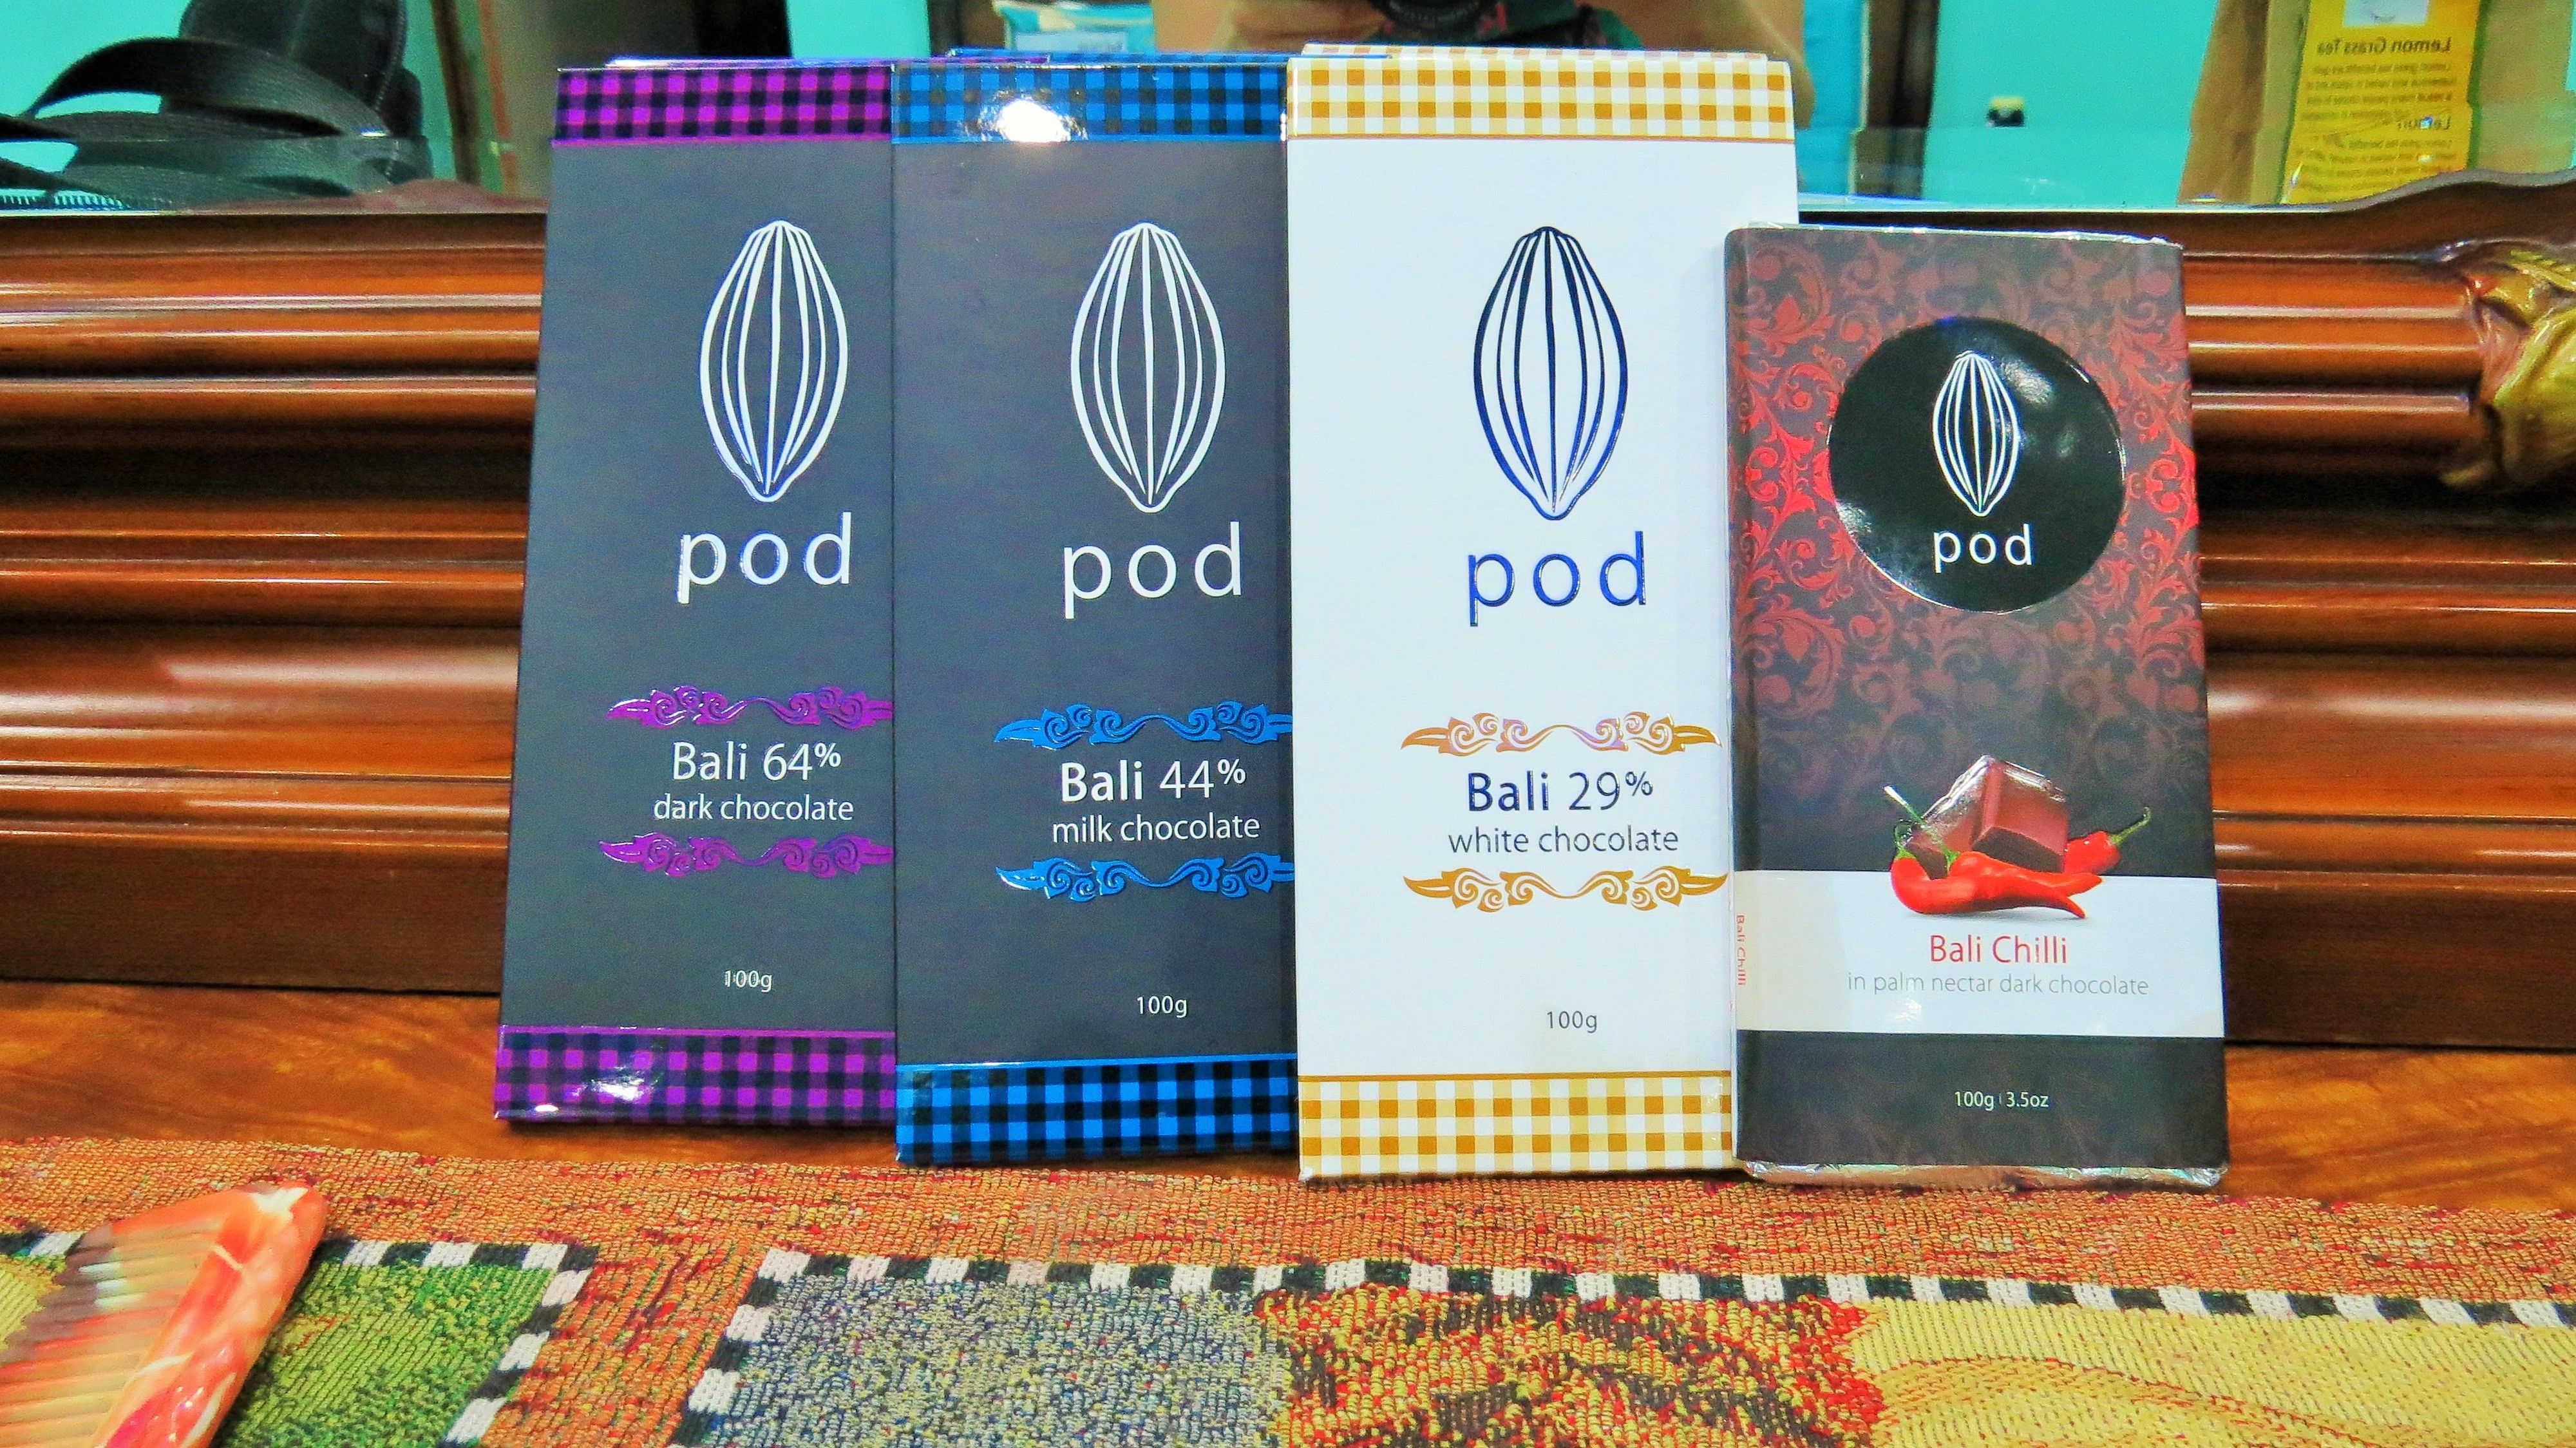 Now this post is chocolate lovers. Pod Chocolate Factory in Bali offers a variety of chocolates (or koklate, which the locals call it ;) ). Specially the one which is also having red chillies in it. It was something different for me. So, I bought it for myself and friends. #MangoTraveler #ThrillThrush #FoodLove #FoodieMe #ChocolateLover #ChocolateLove #DarkChocolates #igersnewengland #maine #lighthouses #seacoastnh #igersmaine #bali #Indonesia #travelphotos #travelbloggers #travelgrams